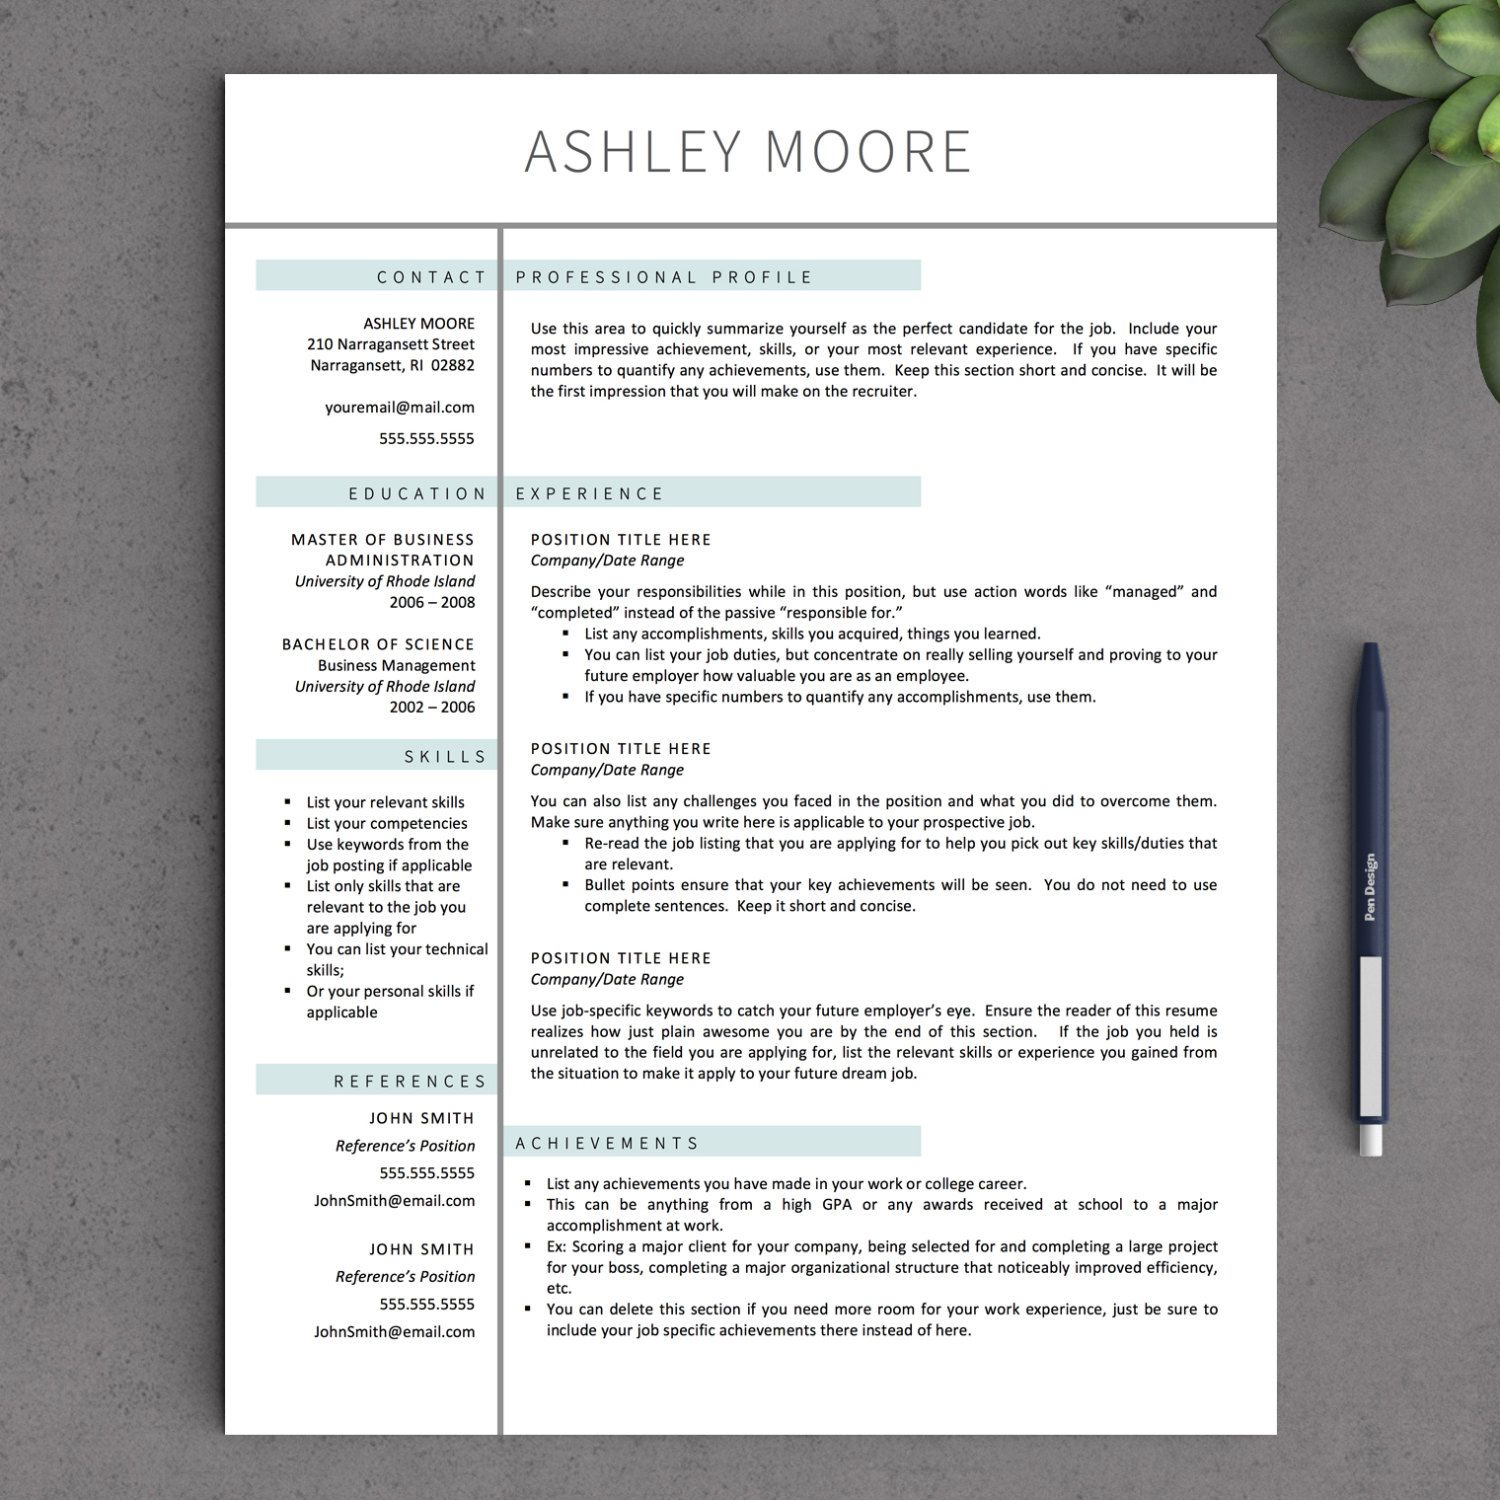 apple pages resume template download apple pages resume template download apple pages resume templates free mac resume templates apple resume templates